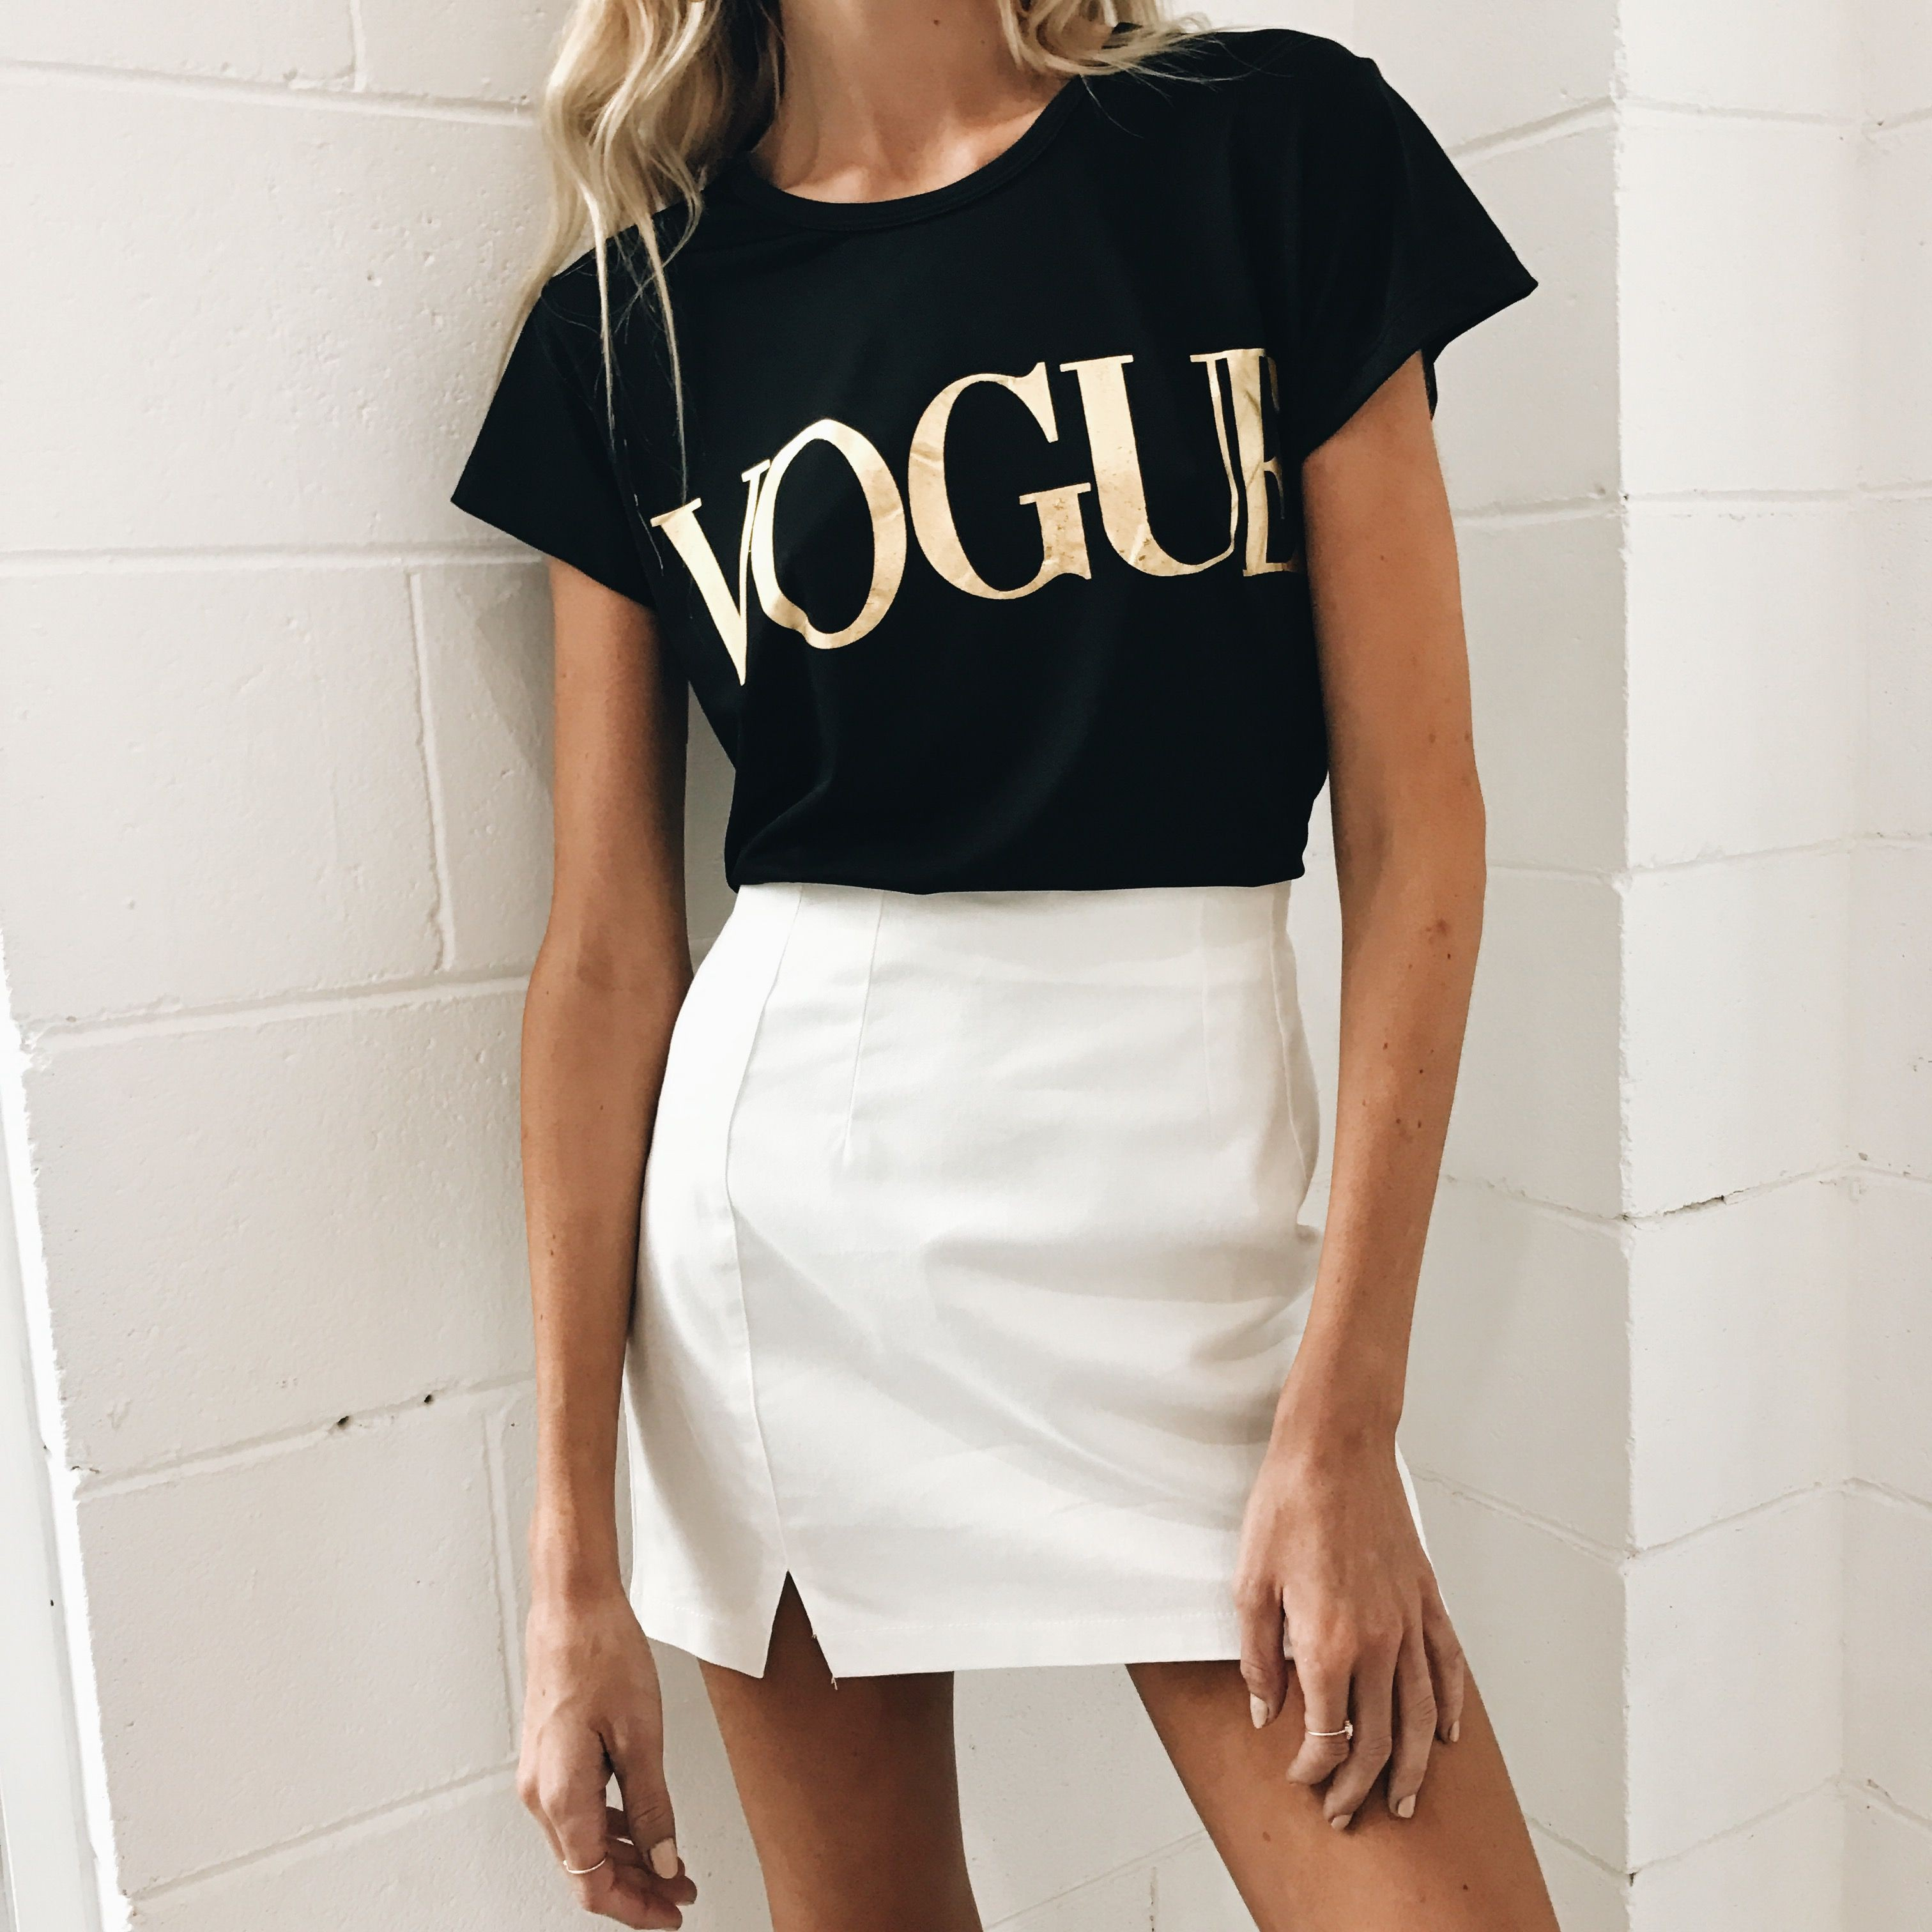 Black and white colour outfit with miniskirt, trousers, crop top